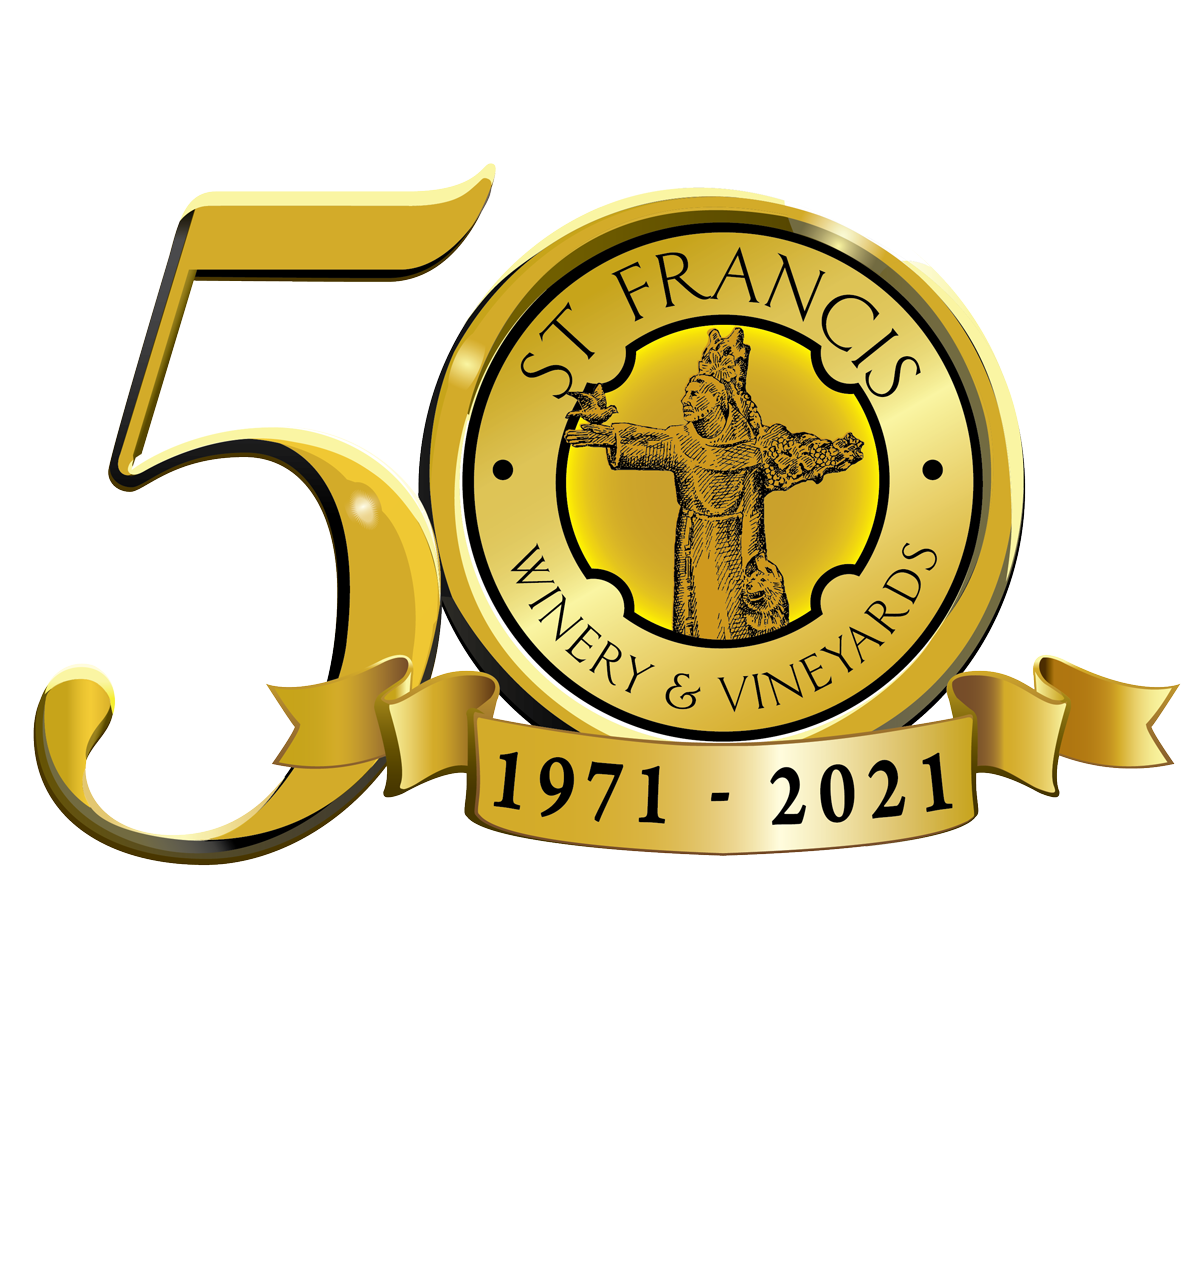 50-year legacy to share